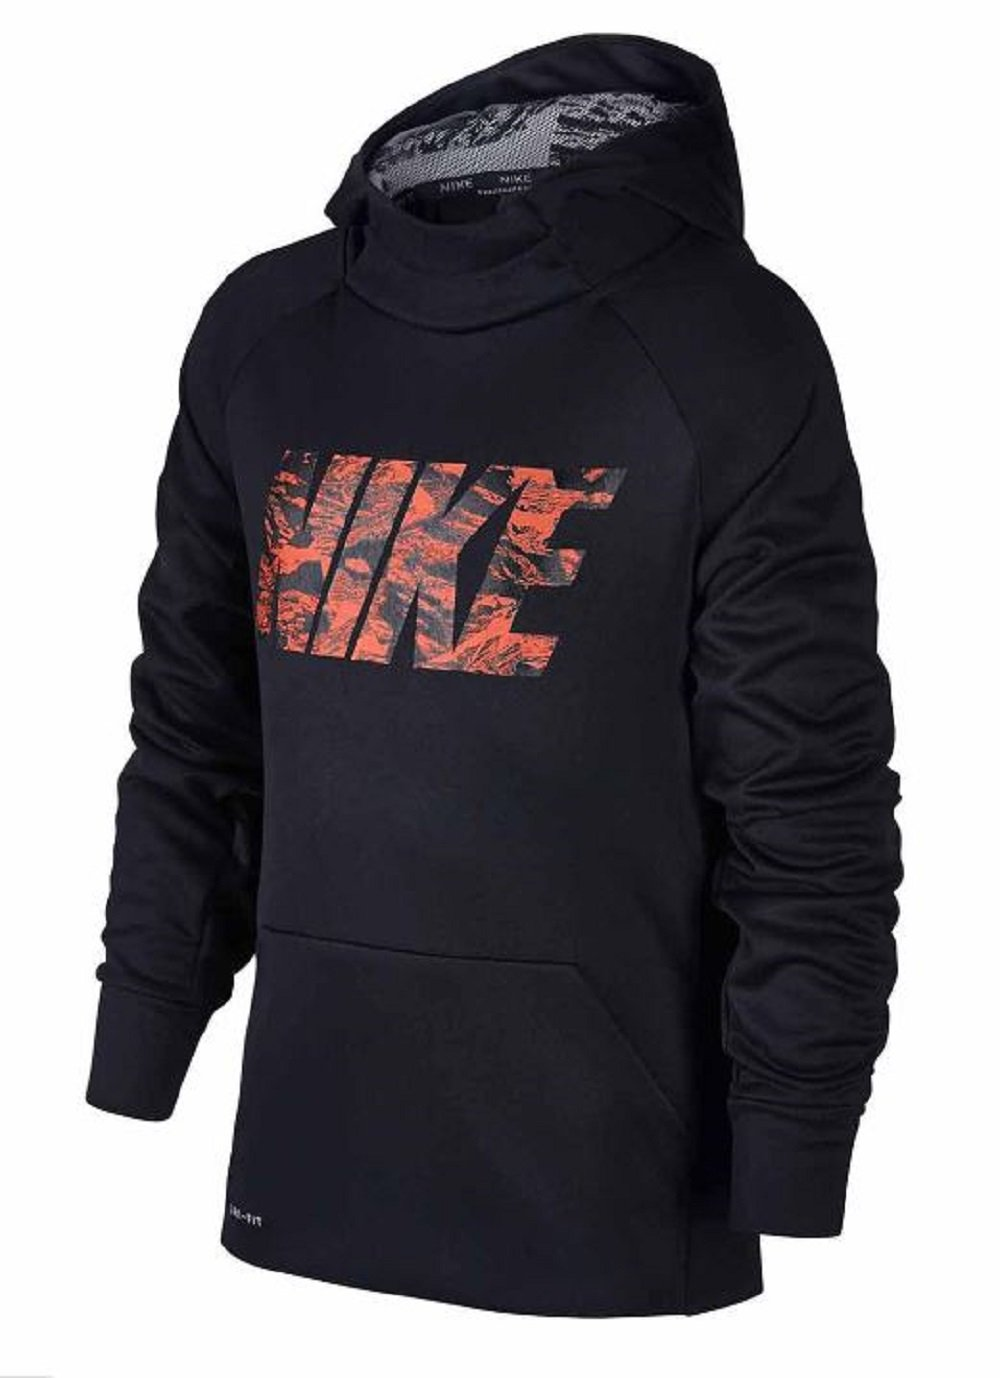 NIKE Boy's Therma Training Hoodie (Black/Orange, Medium)